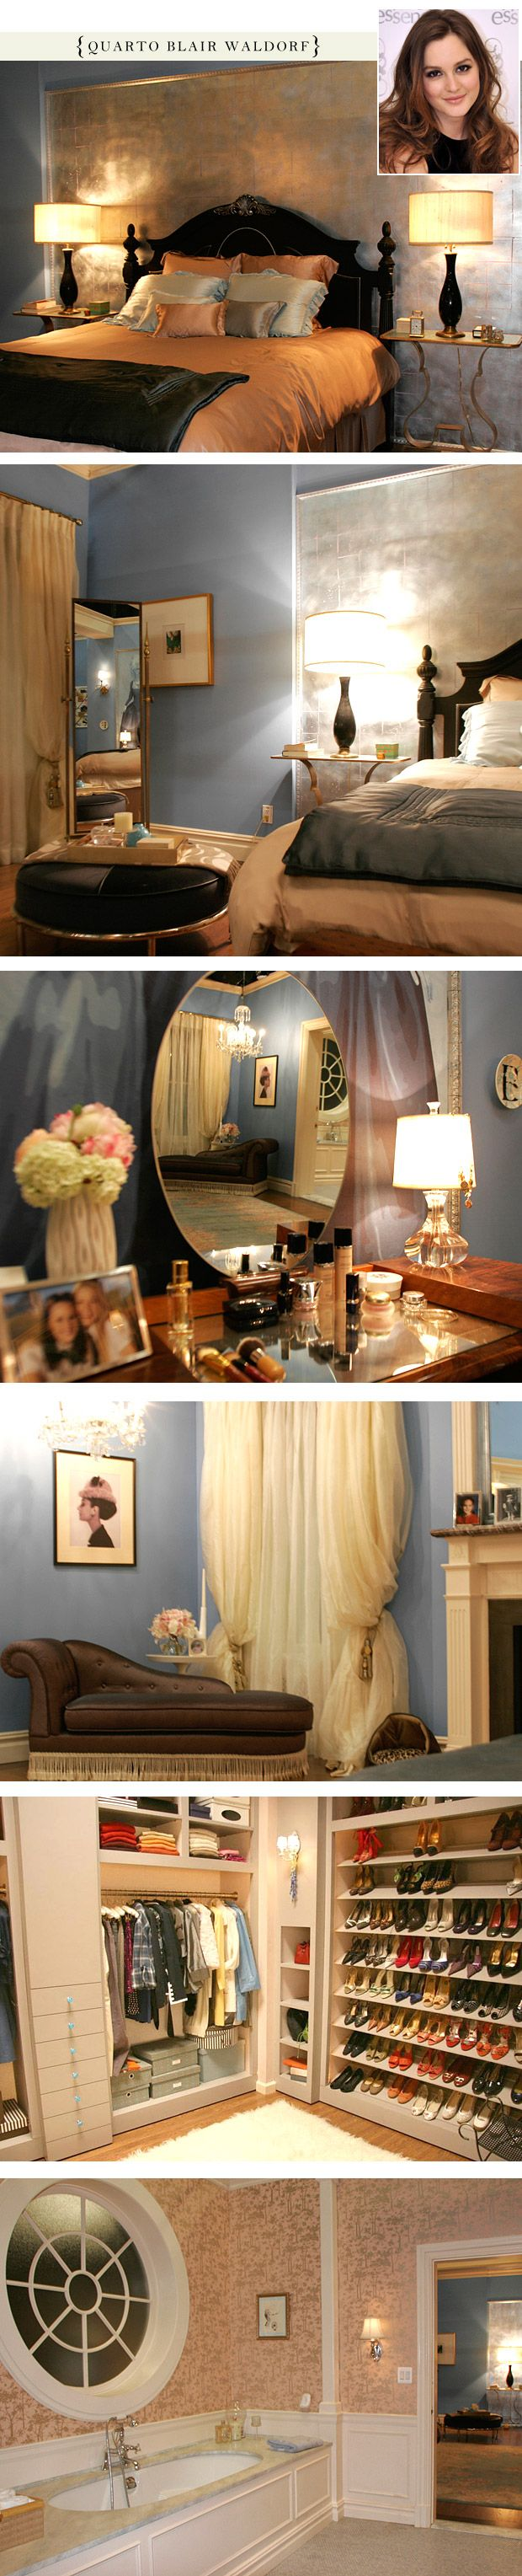 Blair waldorf 39 s bedroom from gossip girl chic housing for Blair waldorf bedroom ideas